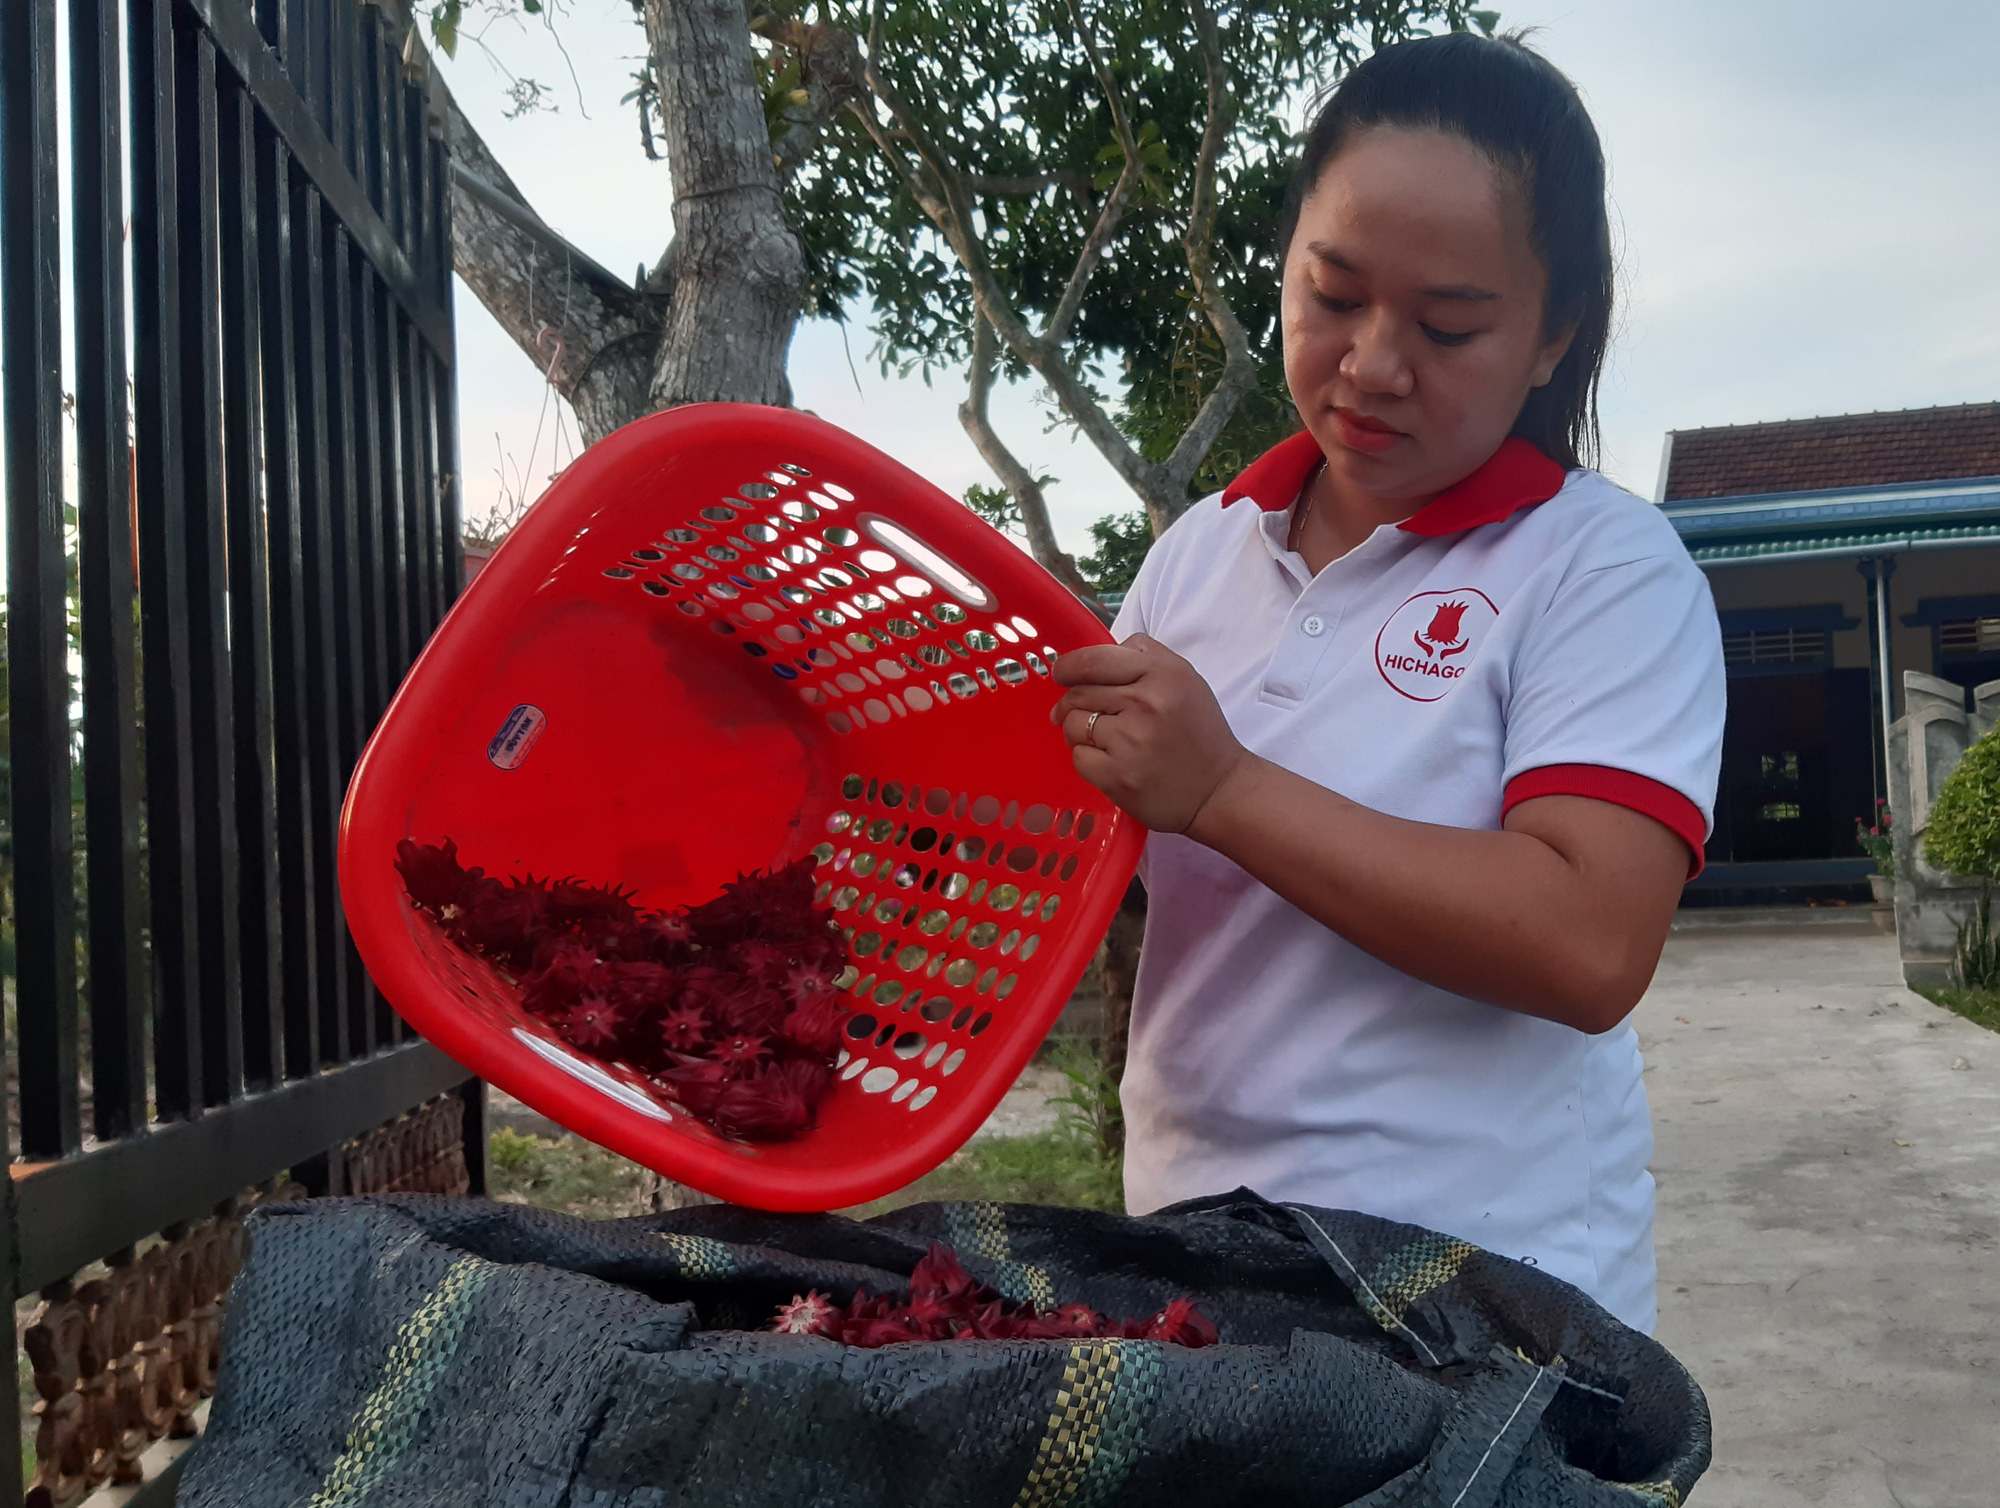 Nguyen Thi Thu Hien selects red artichoke flowers at her processing facility Hichagol, based in Phong An Commune in Phong Dien District, located in Thua Thien-Hue Province in north-central Vietnam. Photo: Duc Tai / Tuoi Tre